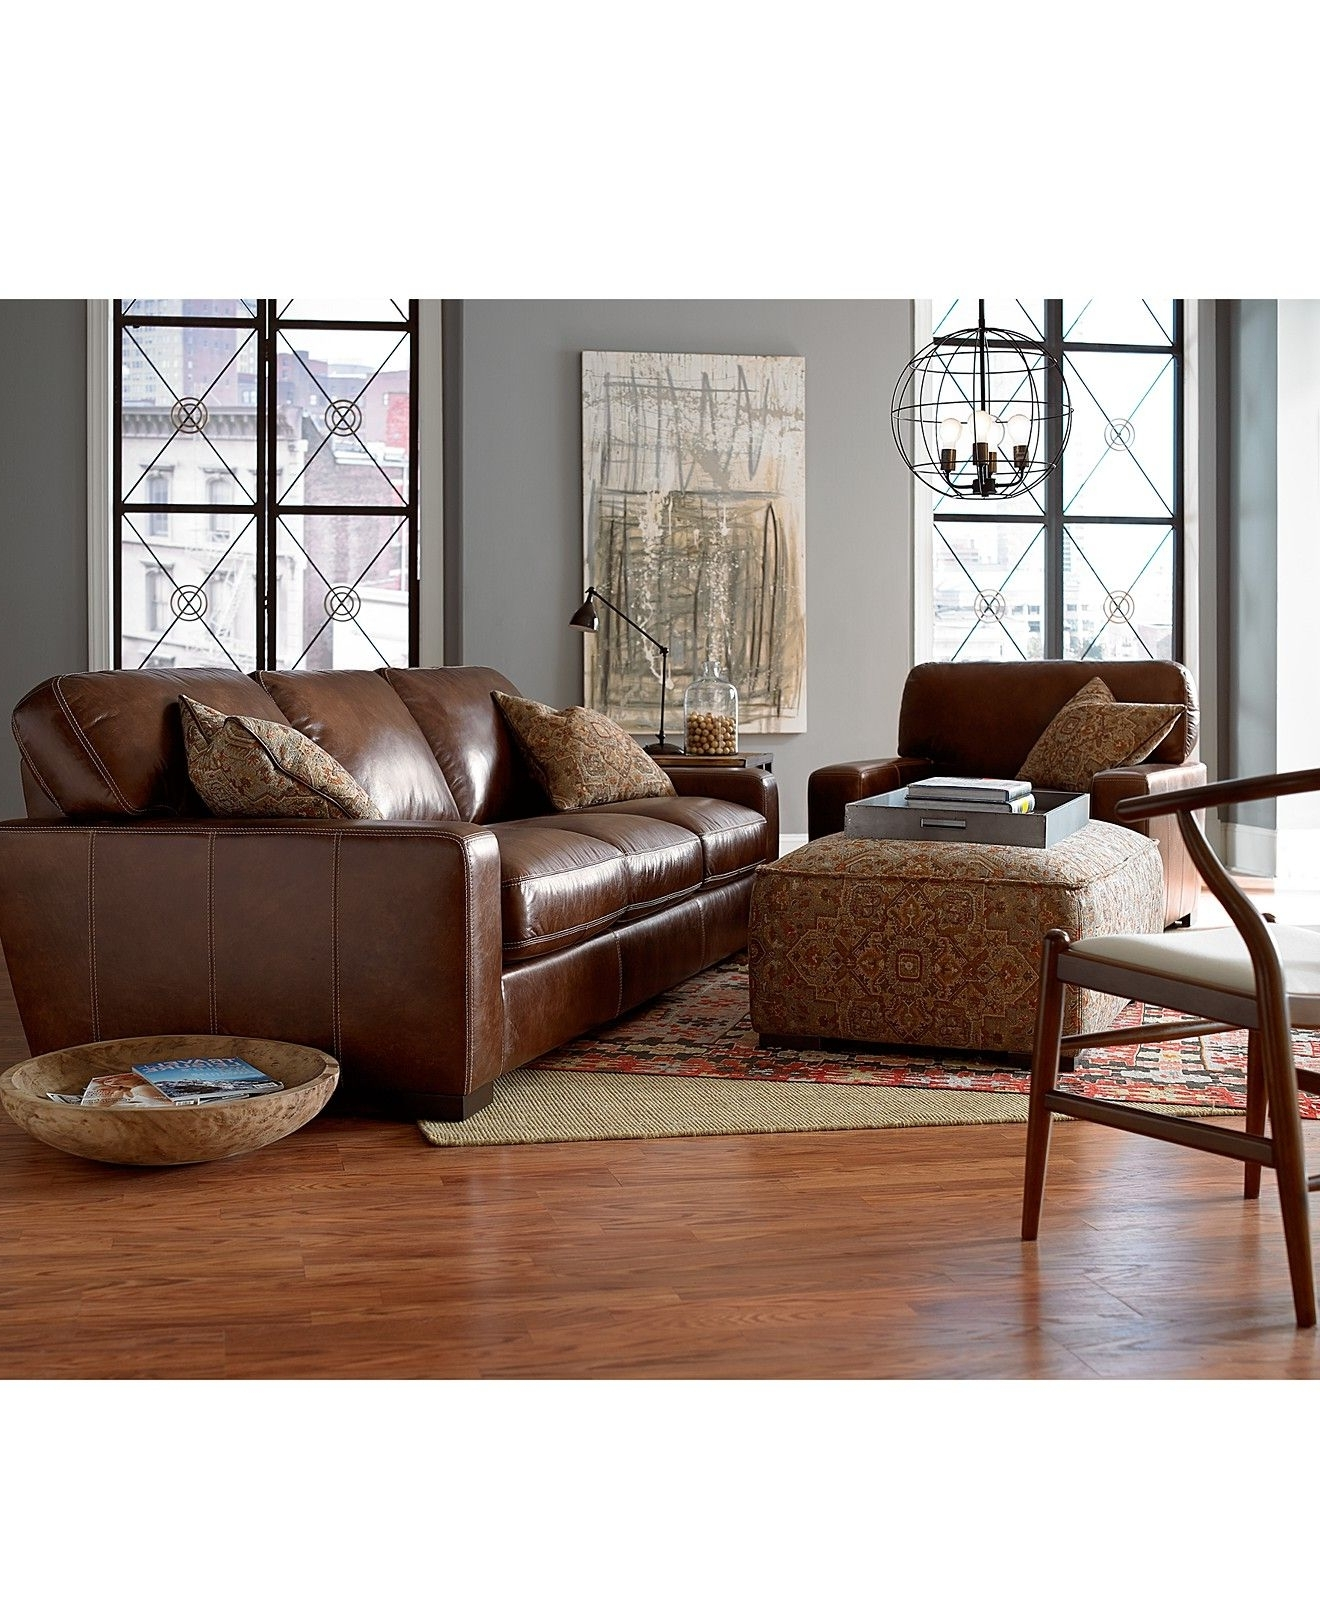 Macys With Regard To Current Macys Leather Sofas (View 16 of 20)